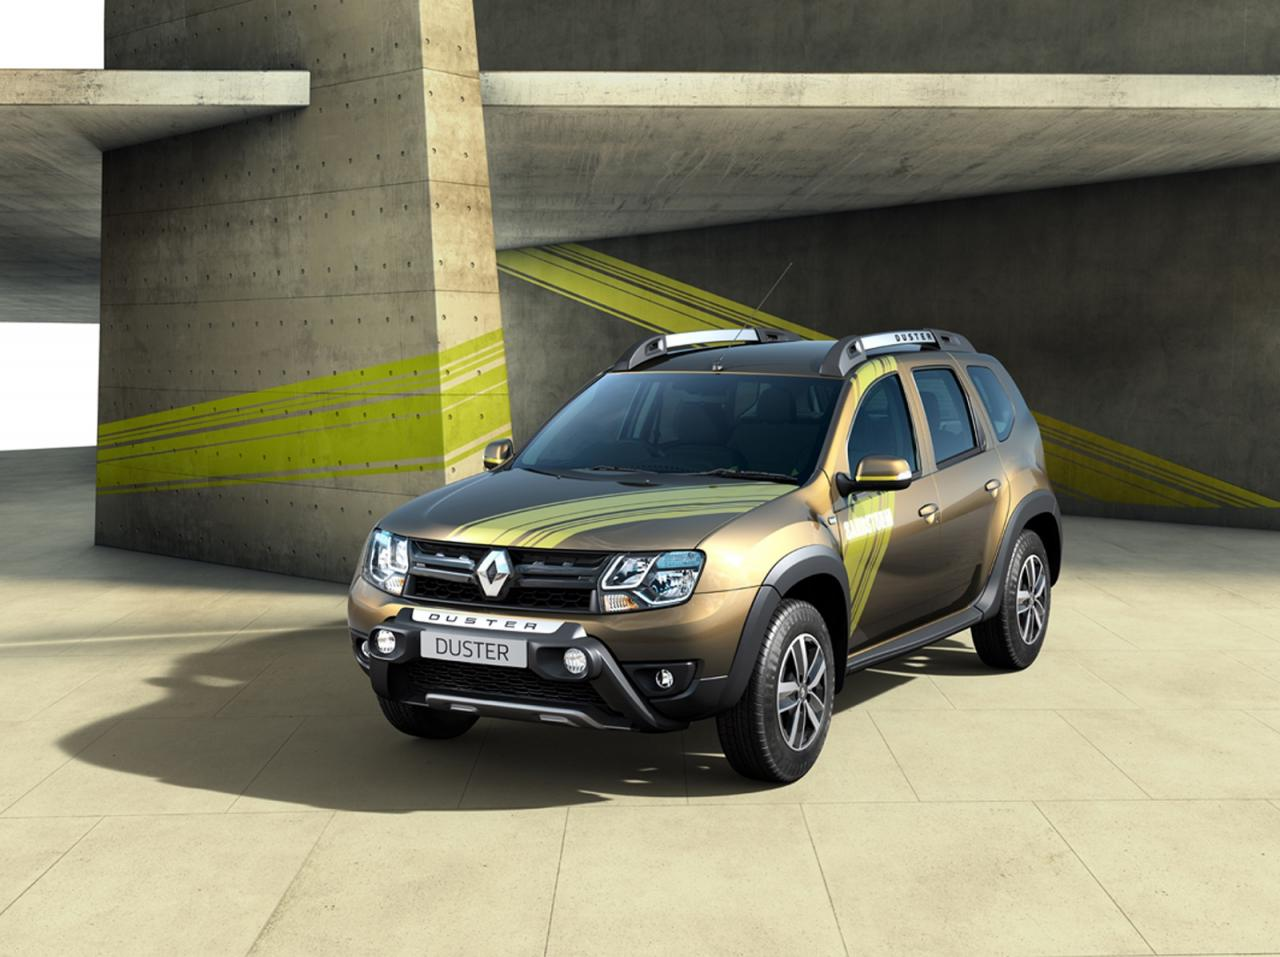 renault duster sandstorm edition launched rs lakh 9 new features. Black Bedroom Furniture Sets. Home Design Ideas